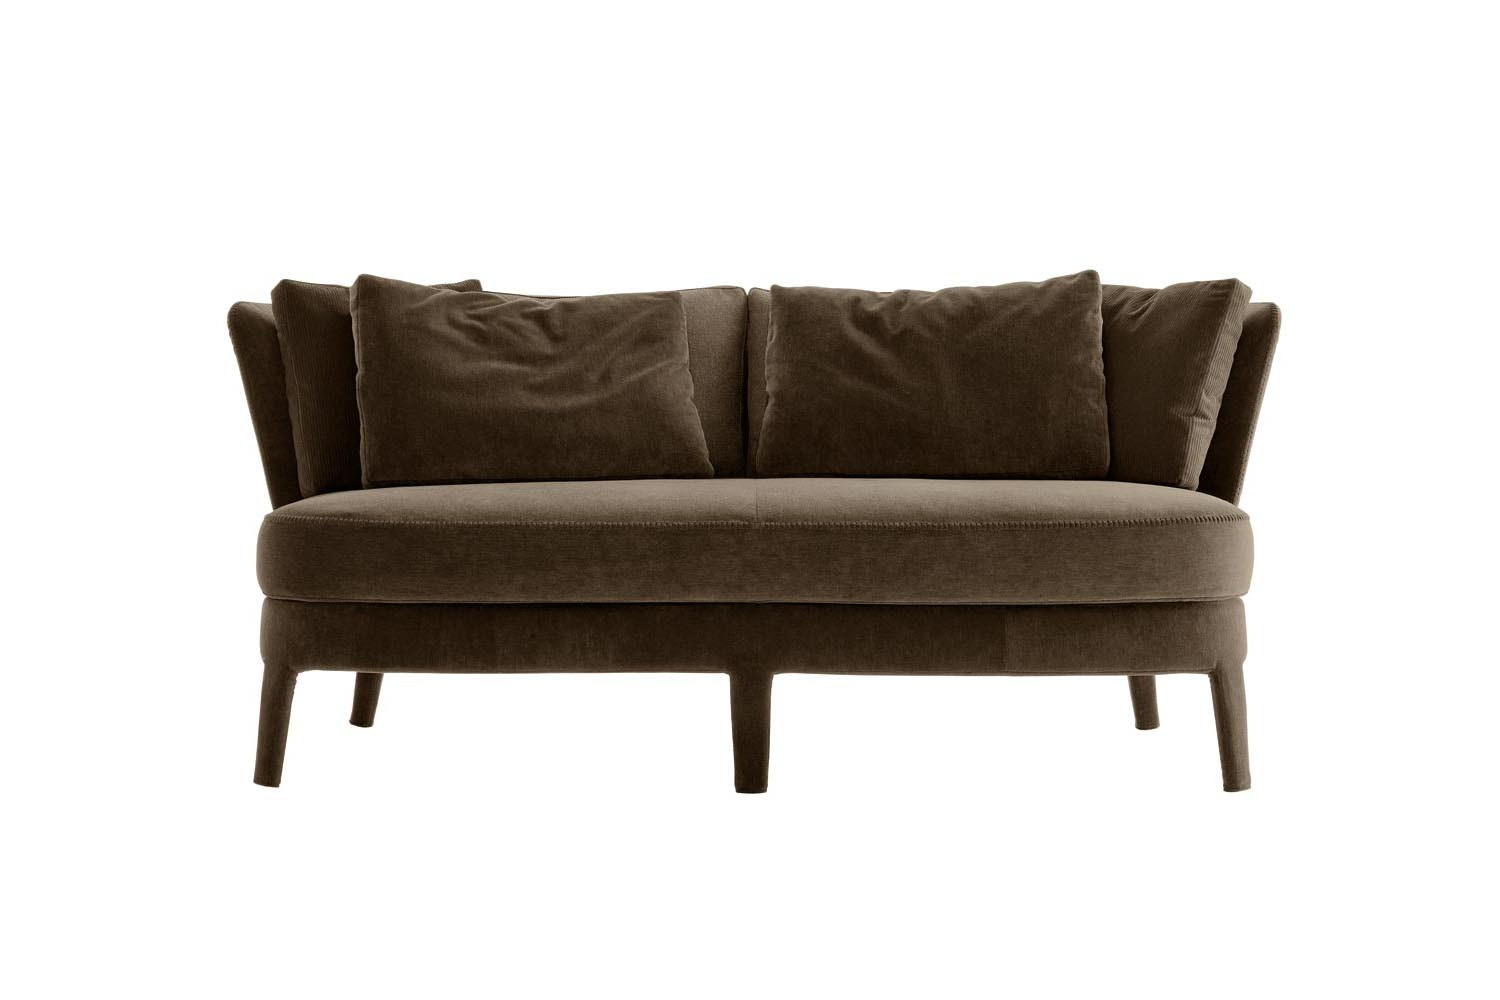 Febo Sofa by Antonio Citterio for Maxalto